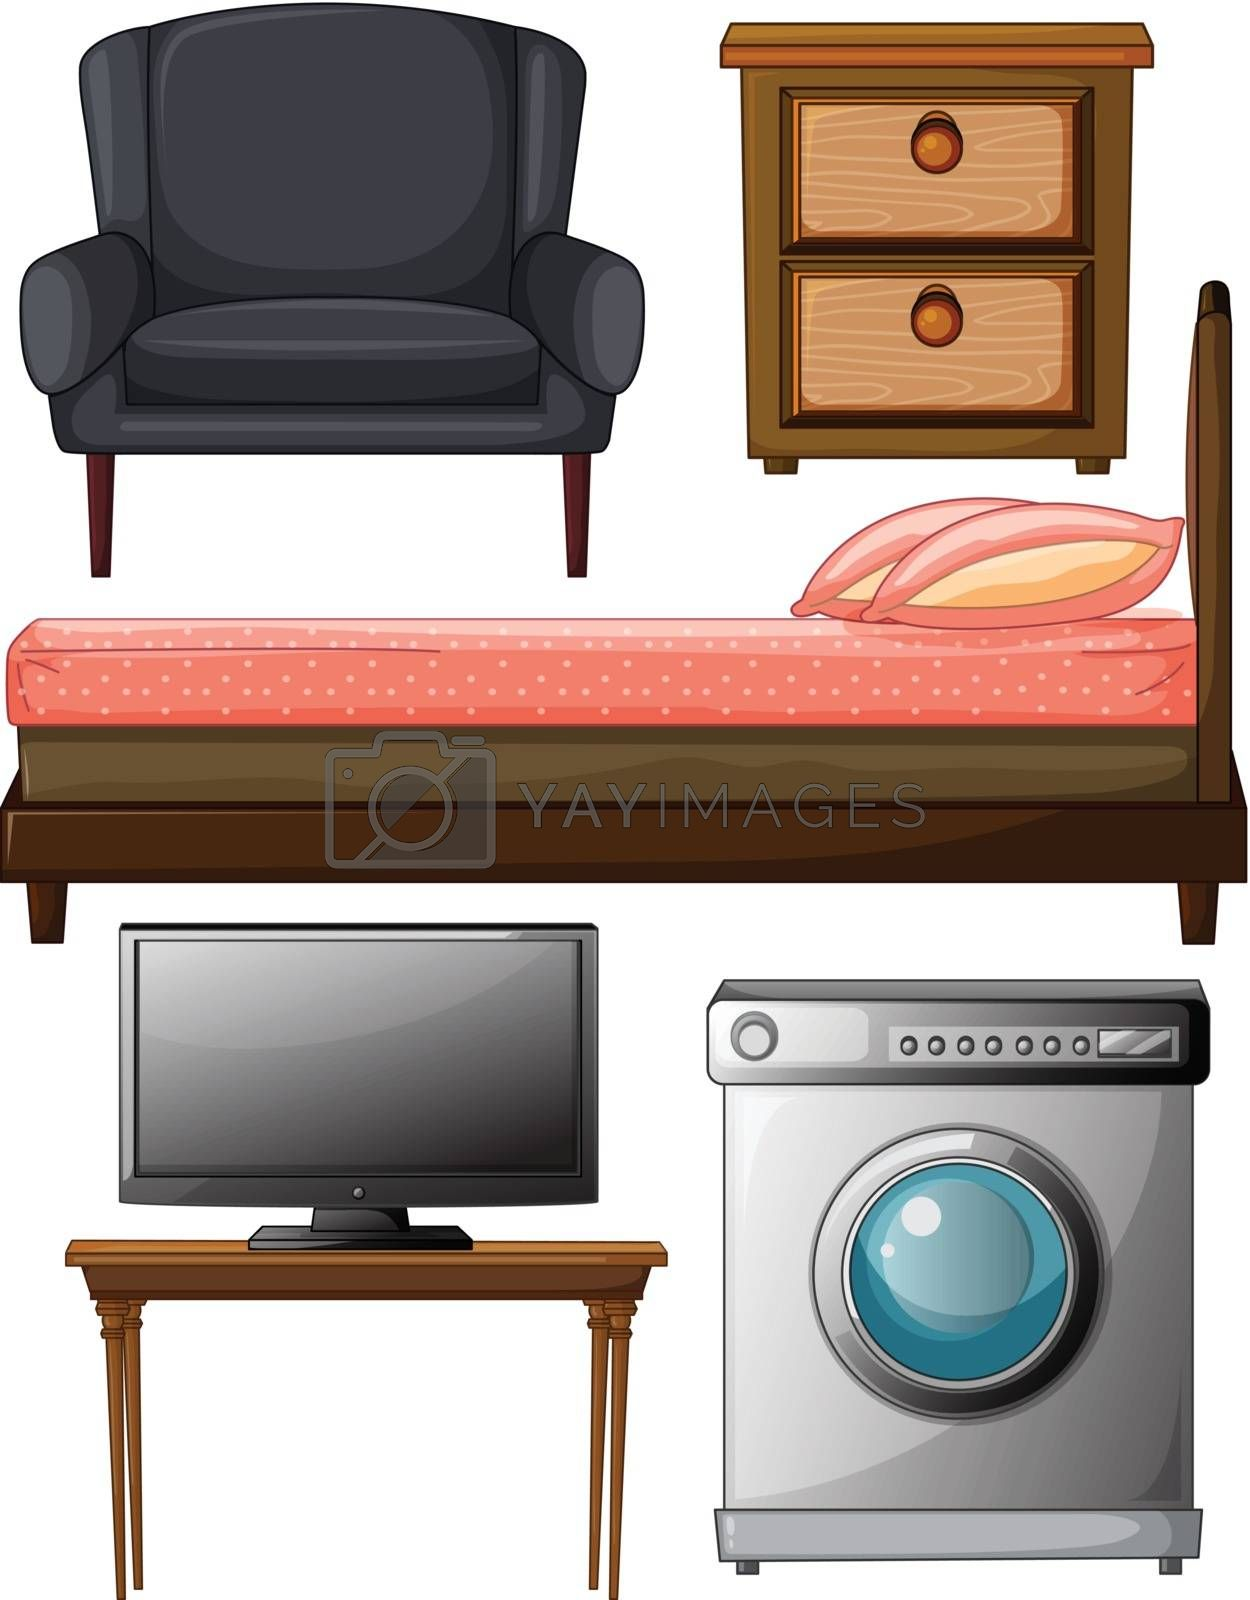 Illustration of useful furnitures on a white background